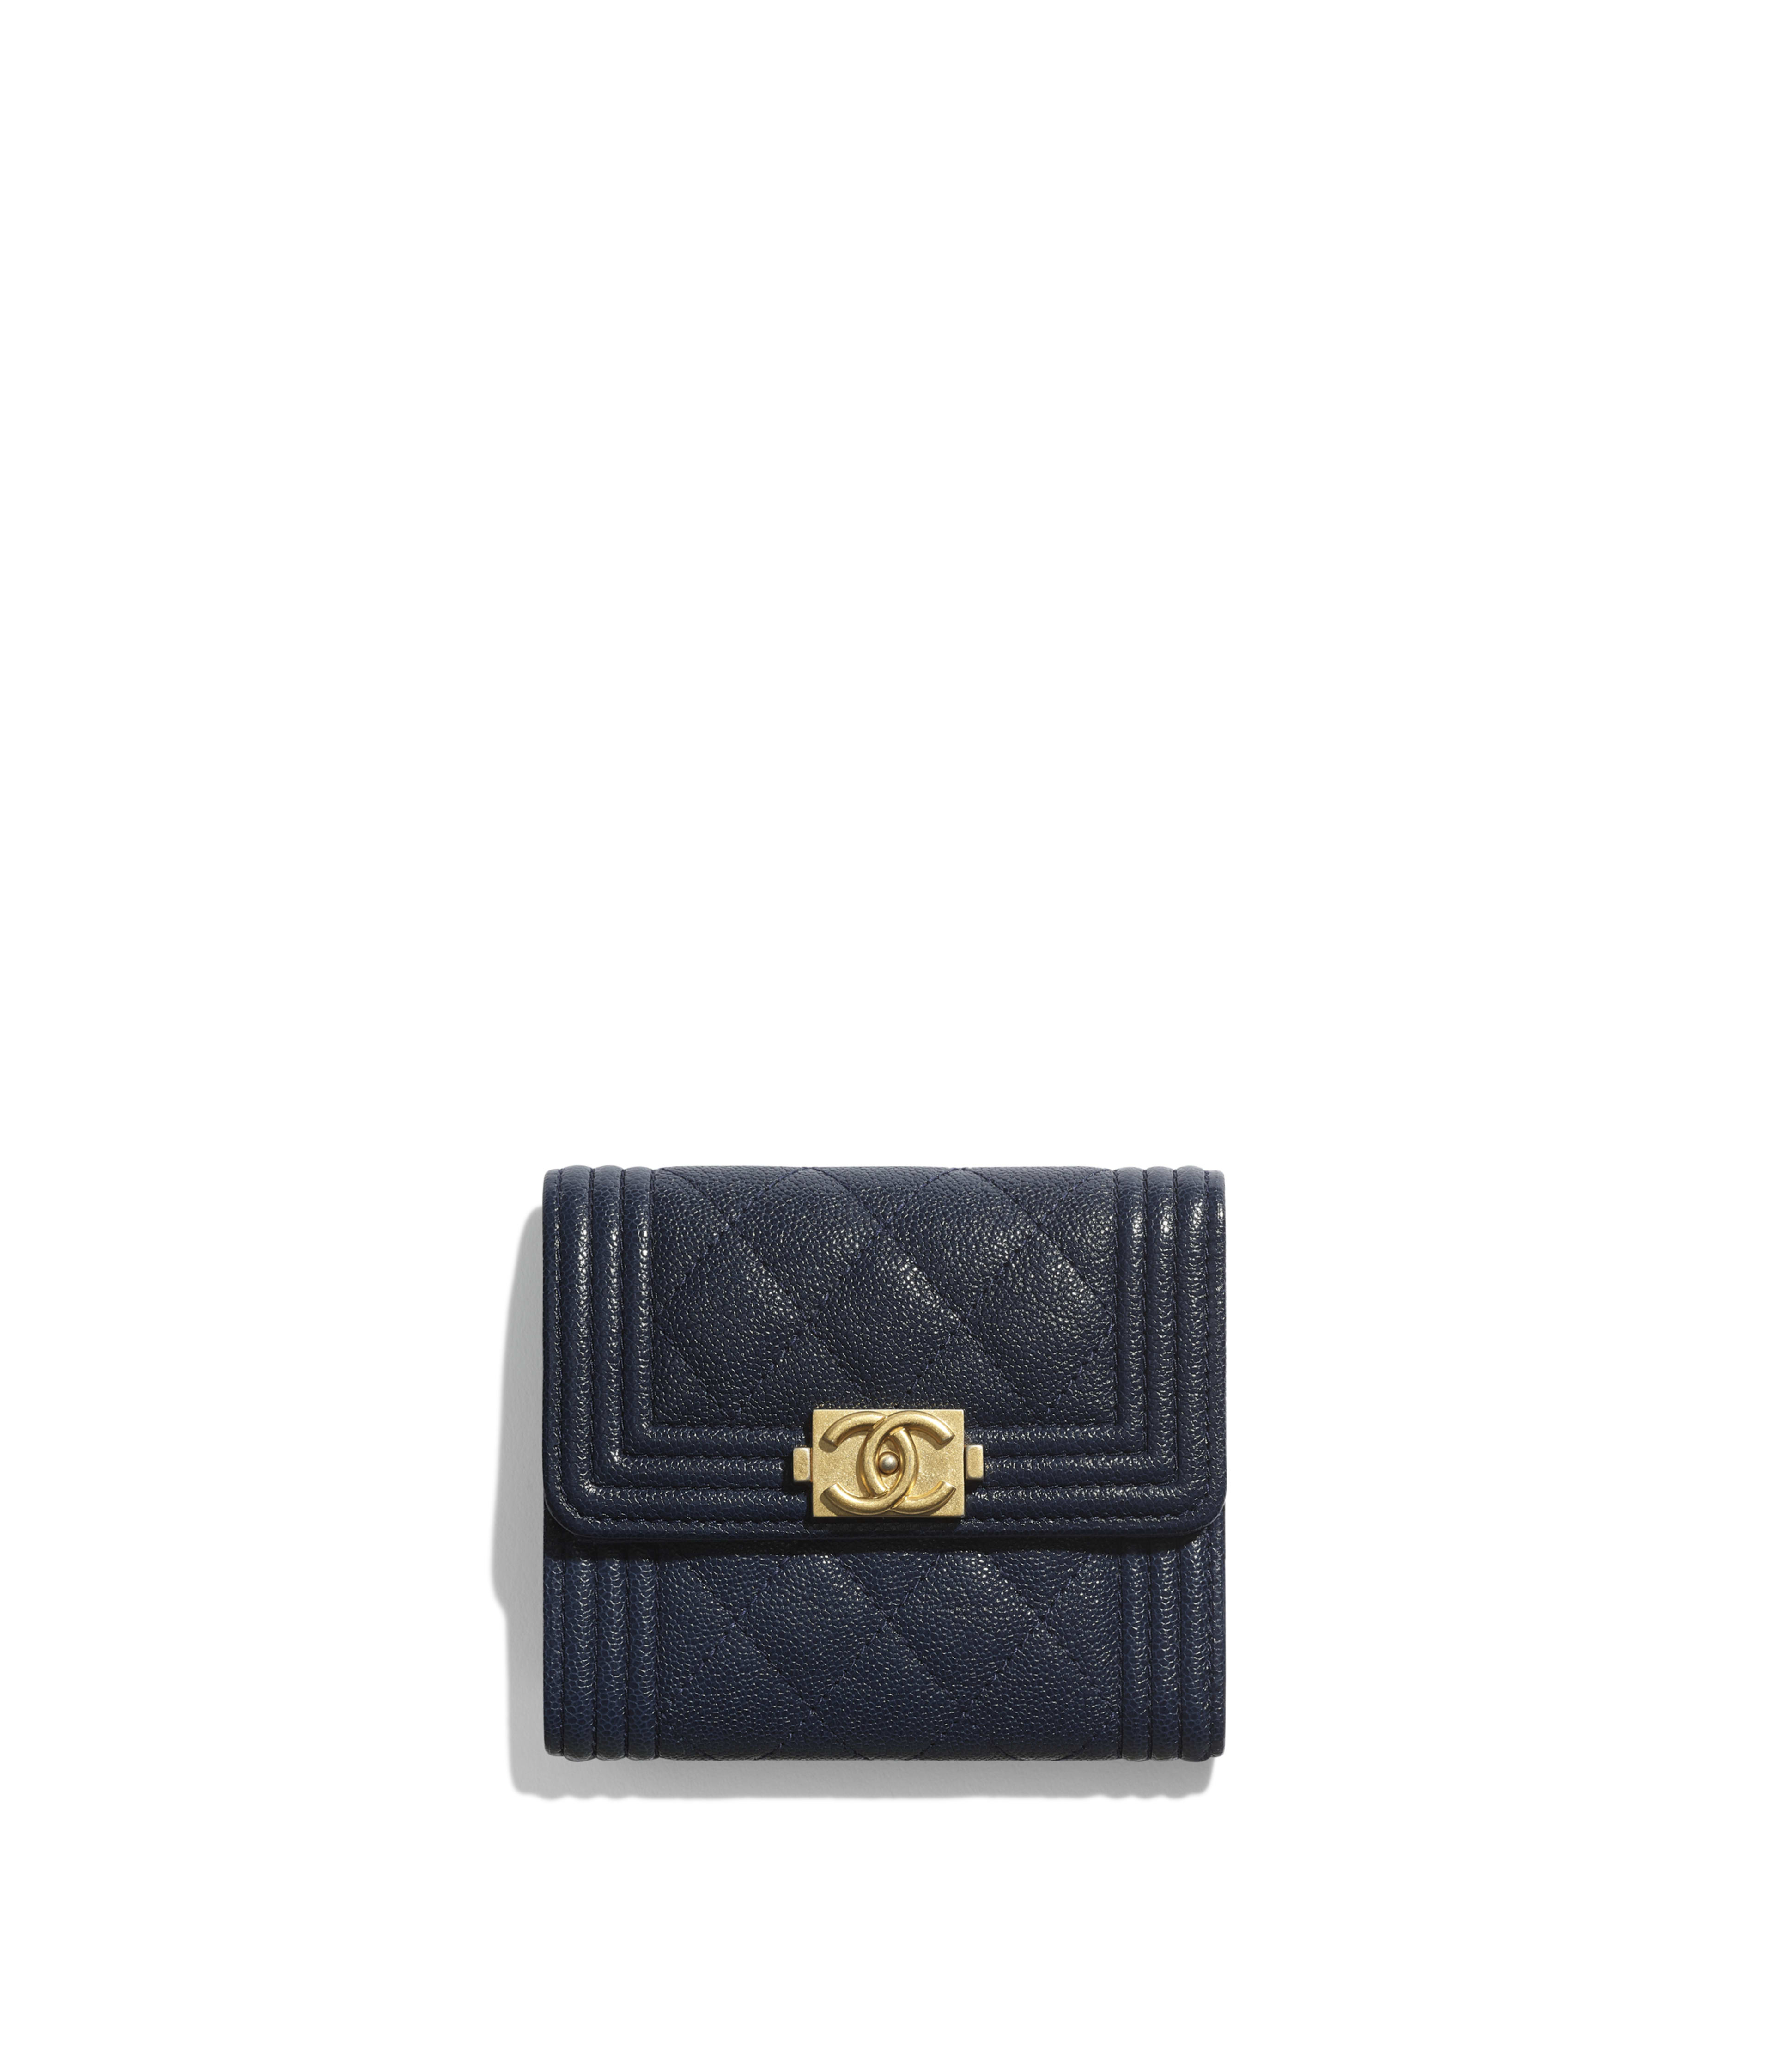 a967ff6deb86fe BOY CHANEL Small Flap Wallet Grained Calfskin & Gold-Tone Metal, Navy Blue  Ref. A81996Y83621N0417